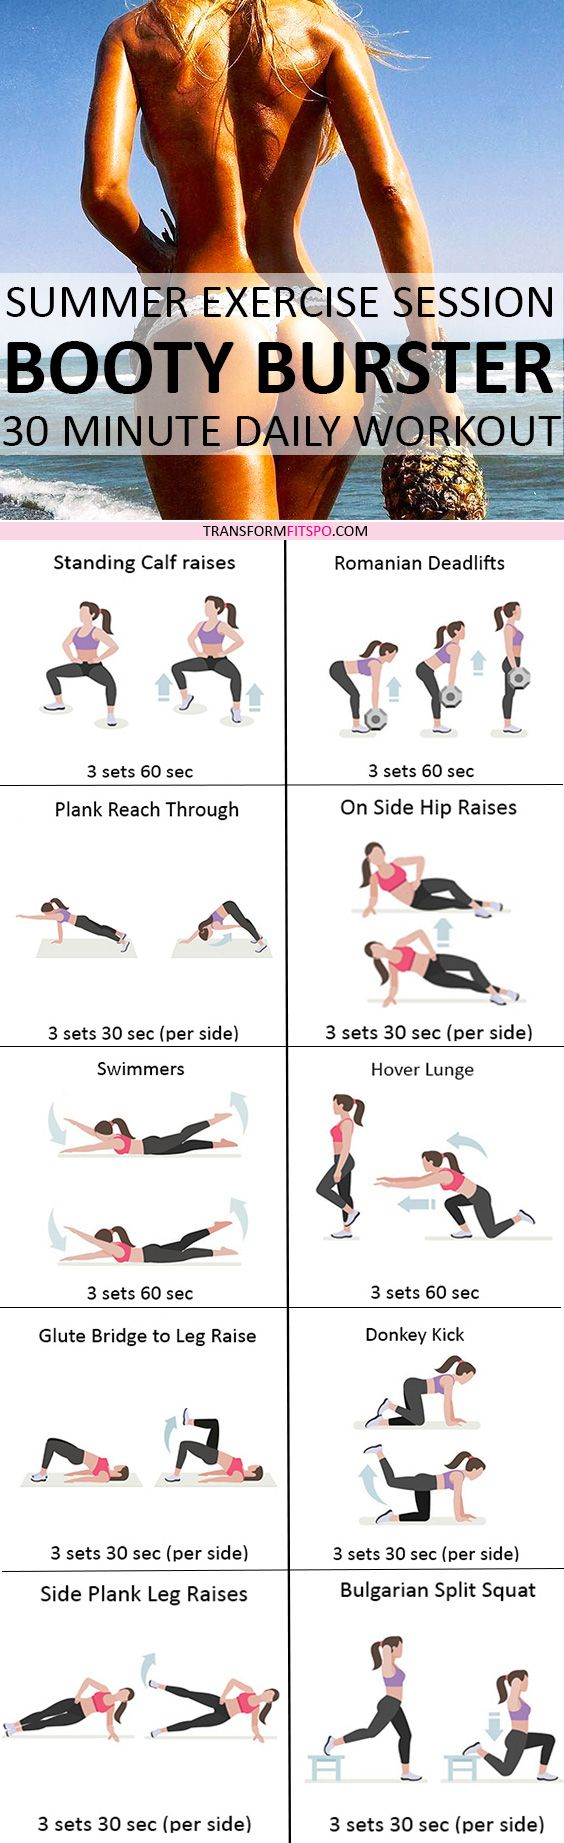 Repin and share if this workout was amazing for growing your bum! Read the post for all the workout descriptions.